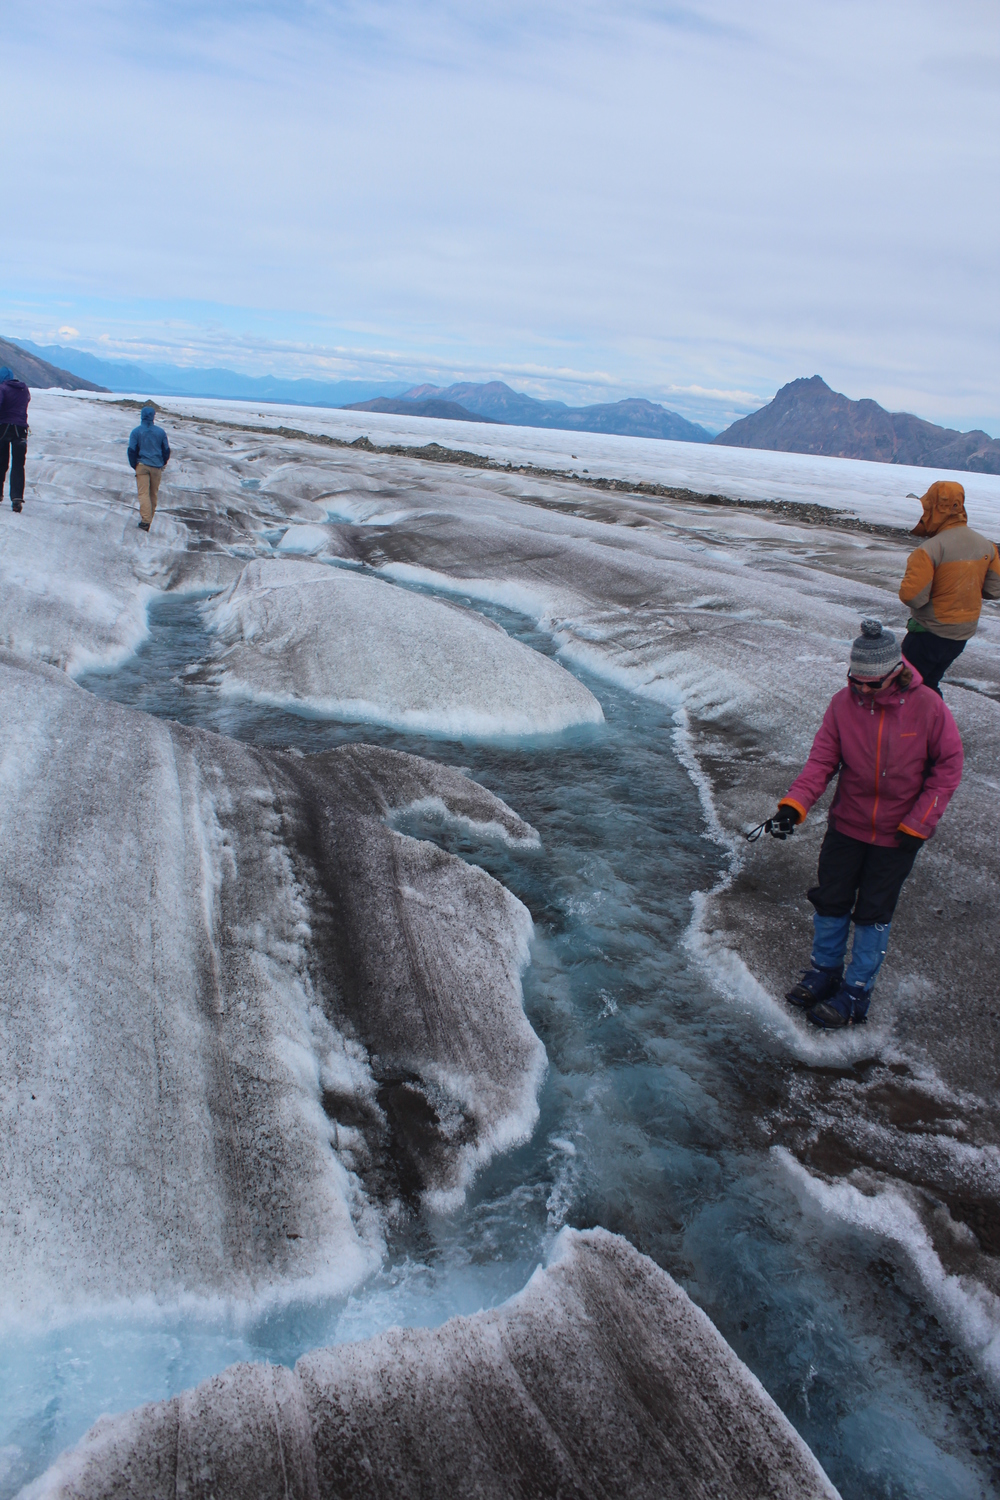 Kim looks at a supraglacial stream.